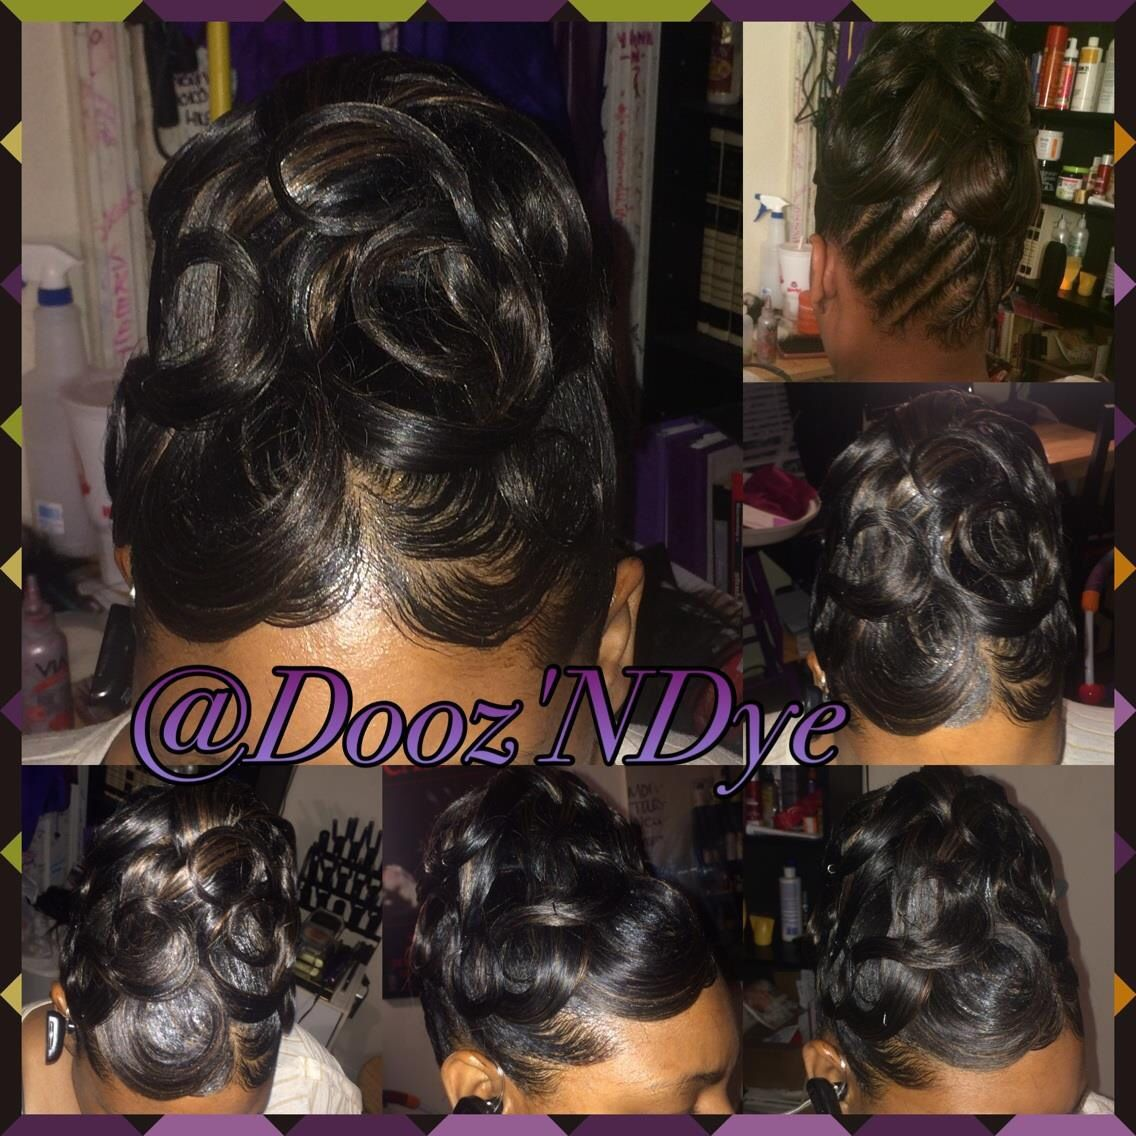 black hairstyles | hairstyles for black women | updo